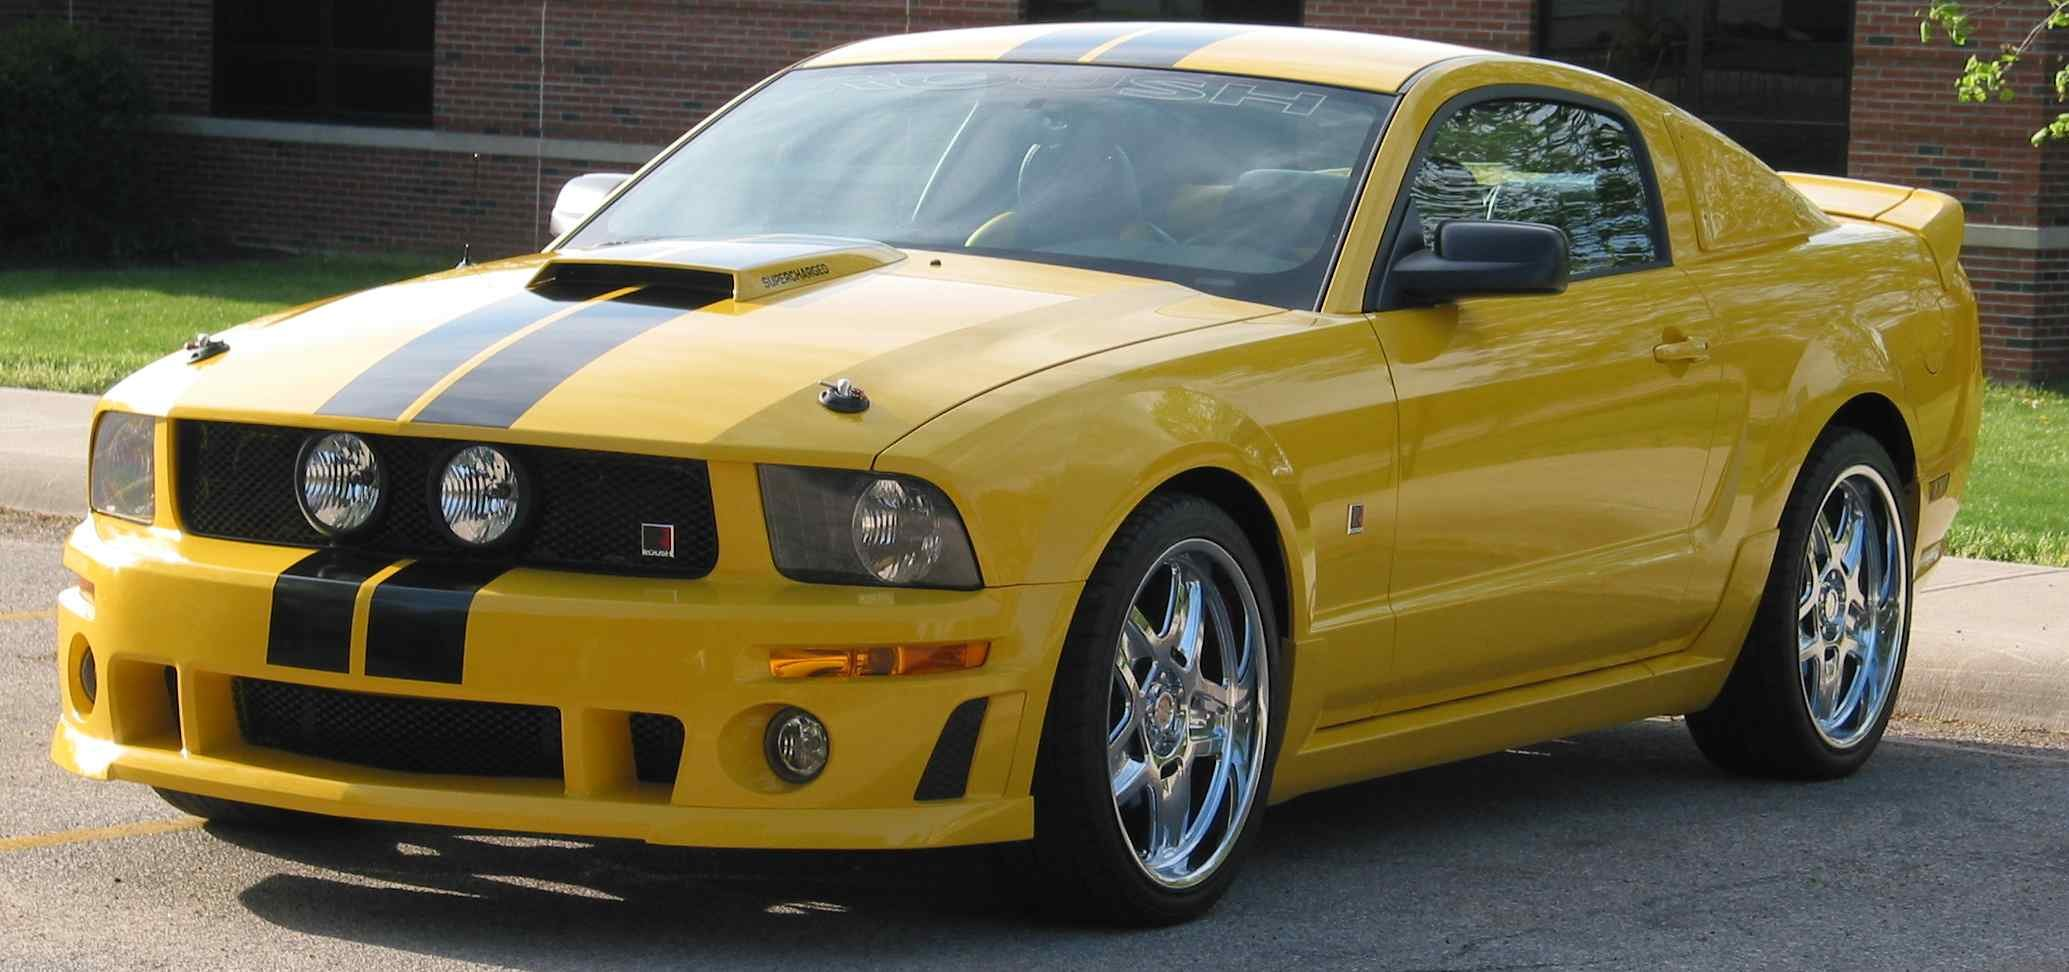 Roush Wing On My Black Convertible Page 2 Ford